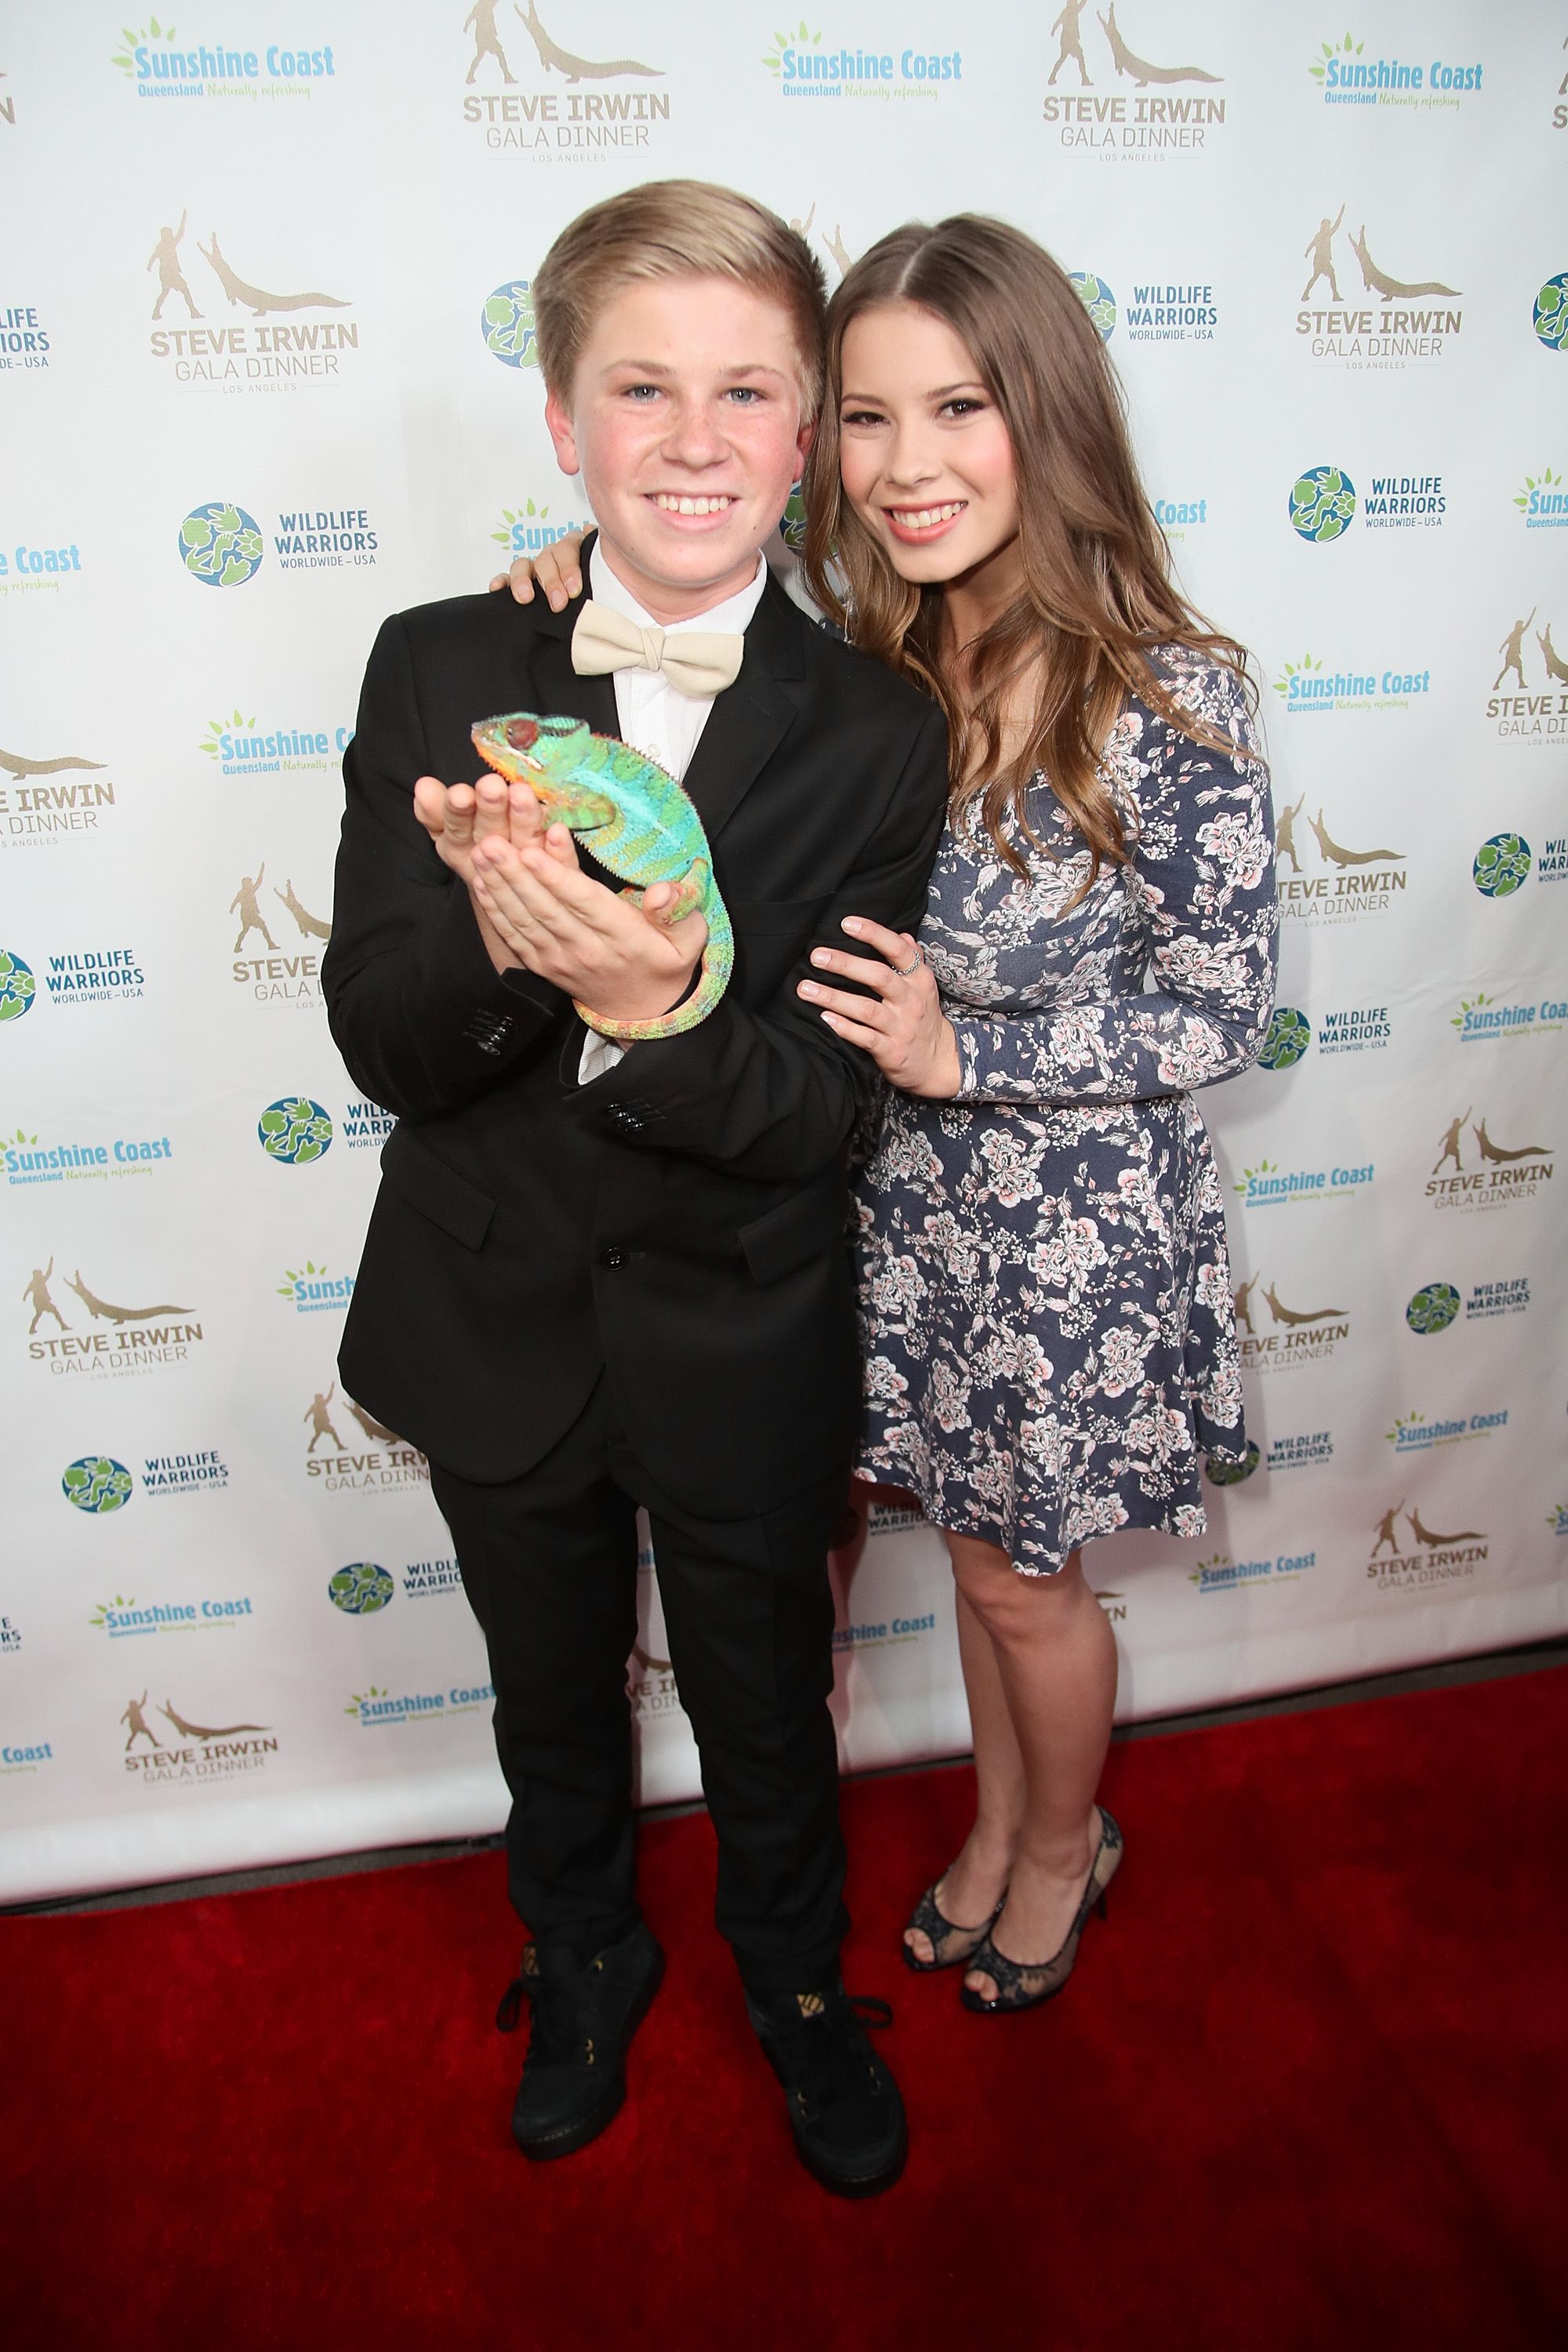 Robert Irwin and Bindi Irwin at the Steve Irwin Gala Dinner at the SLS Hotel at Beverly Hills on May 13, 2017   Photo: Getty Images